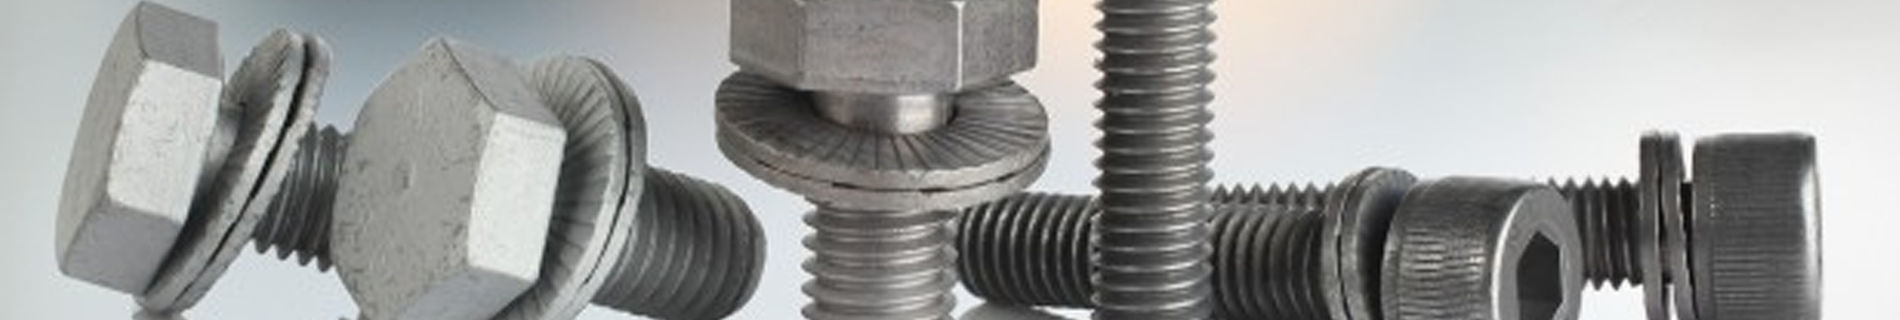 Industrial Bolts banner